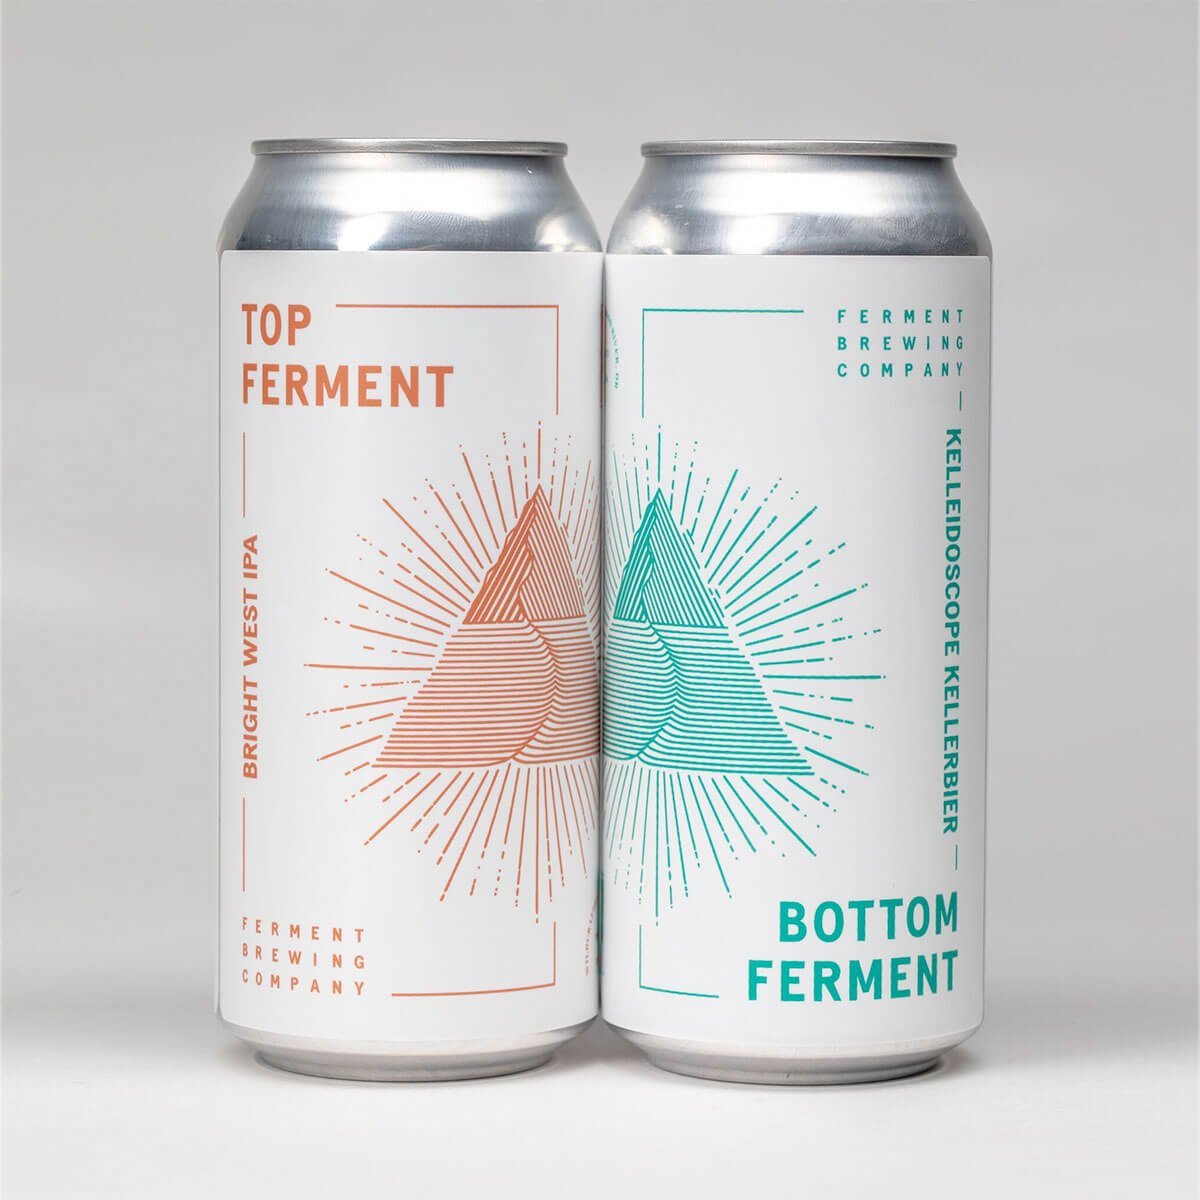 16 oz. cans of Top Ferment and Bottom Ferment by Ferment Brewing Company